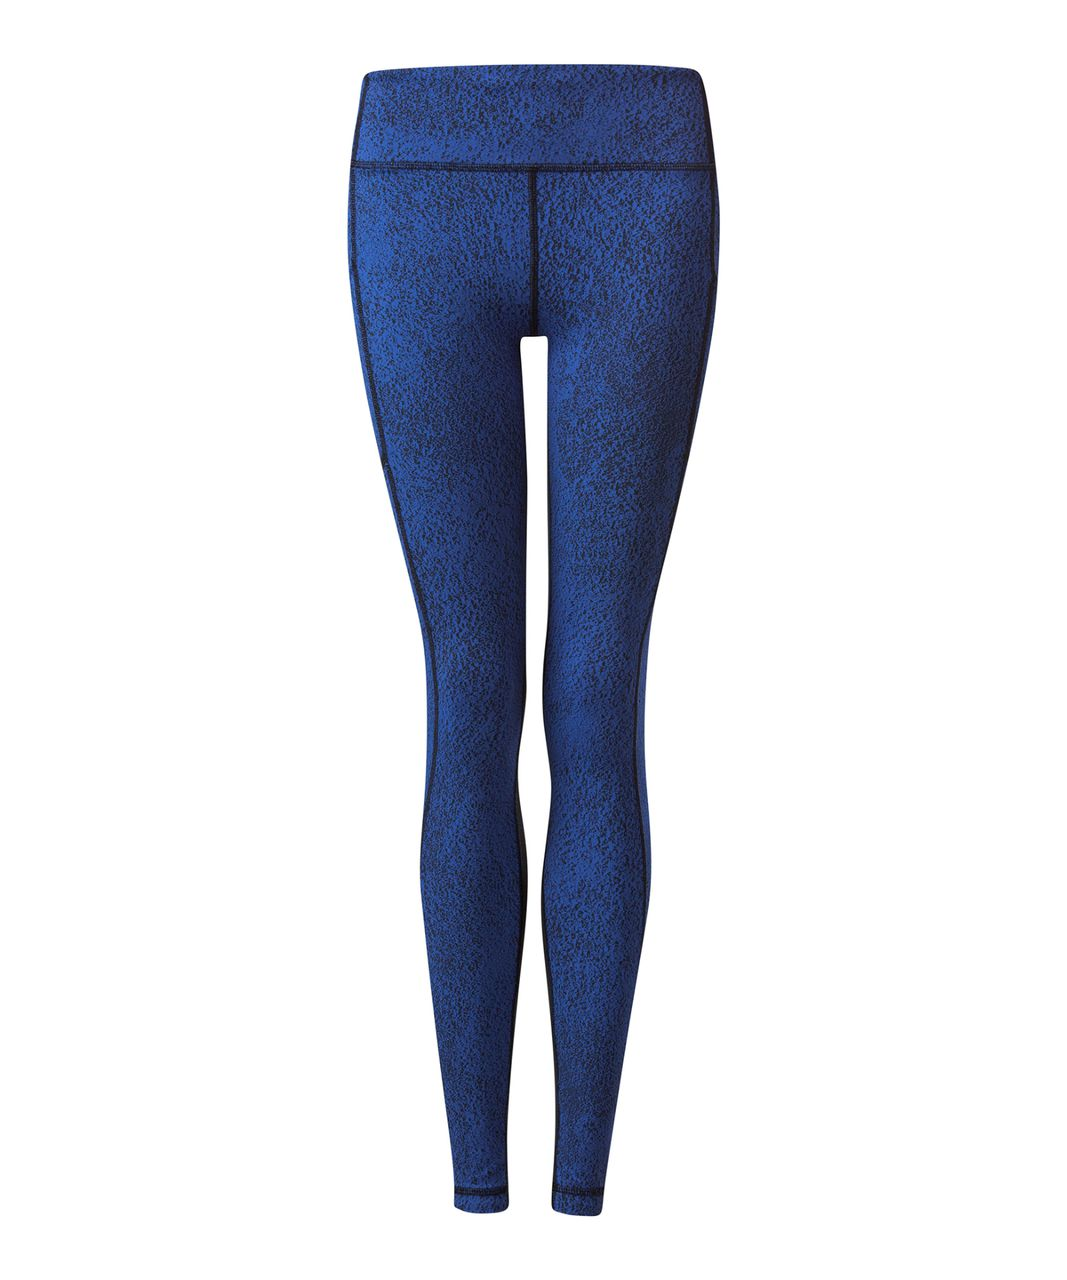 Lululemon Speed Tight V - Power Luxtreme Spray Jacquard Sapphire Blue Black / Black